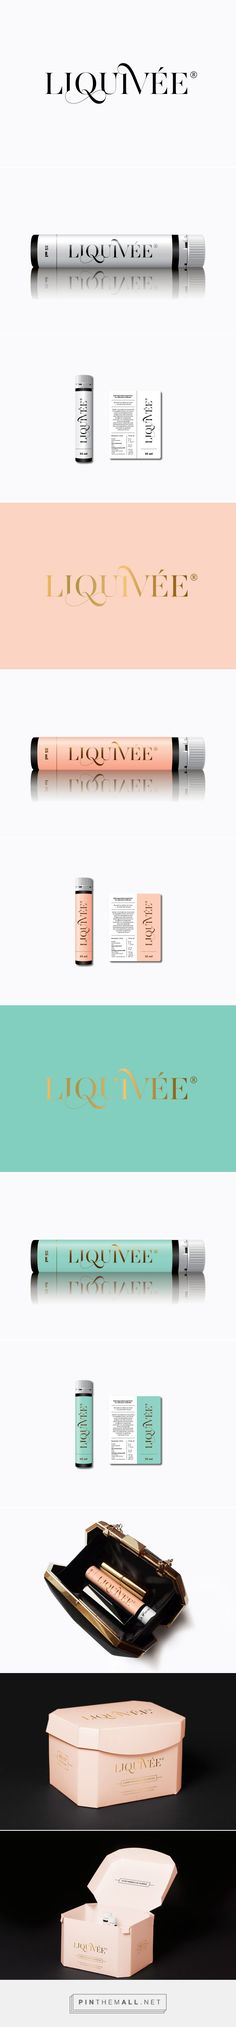 Liquivée by Kiss Miklos curated by Packaging Diva PD. A new type of beauty vitamins in soft and feminine packaging.